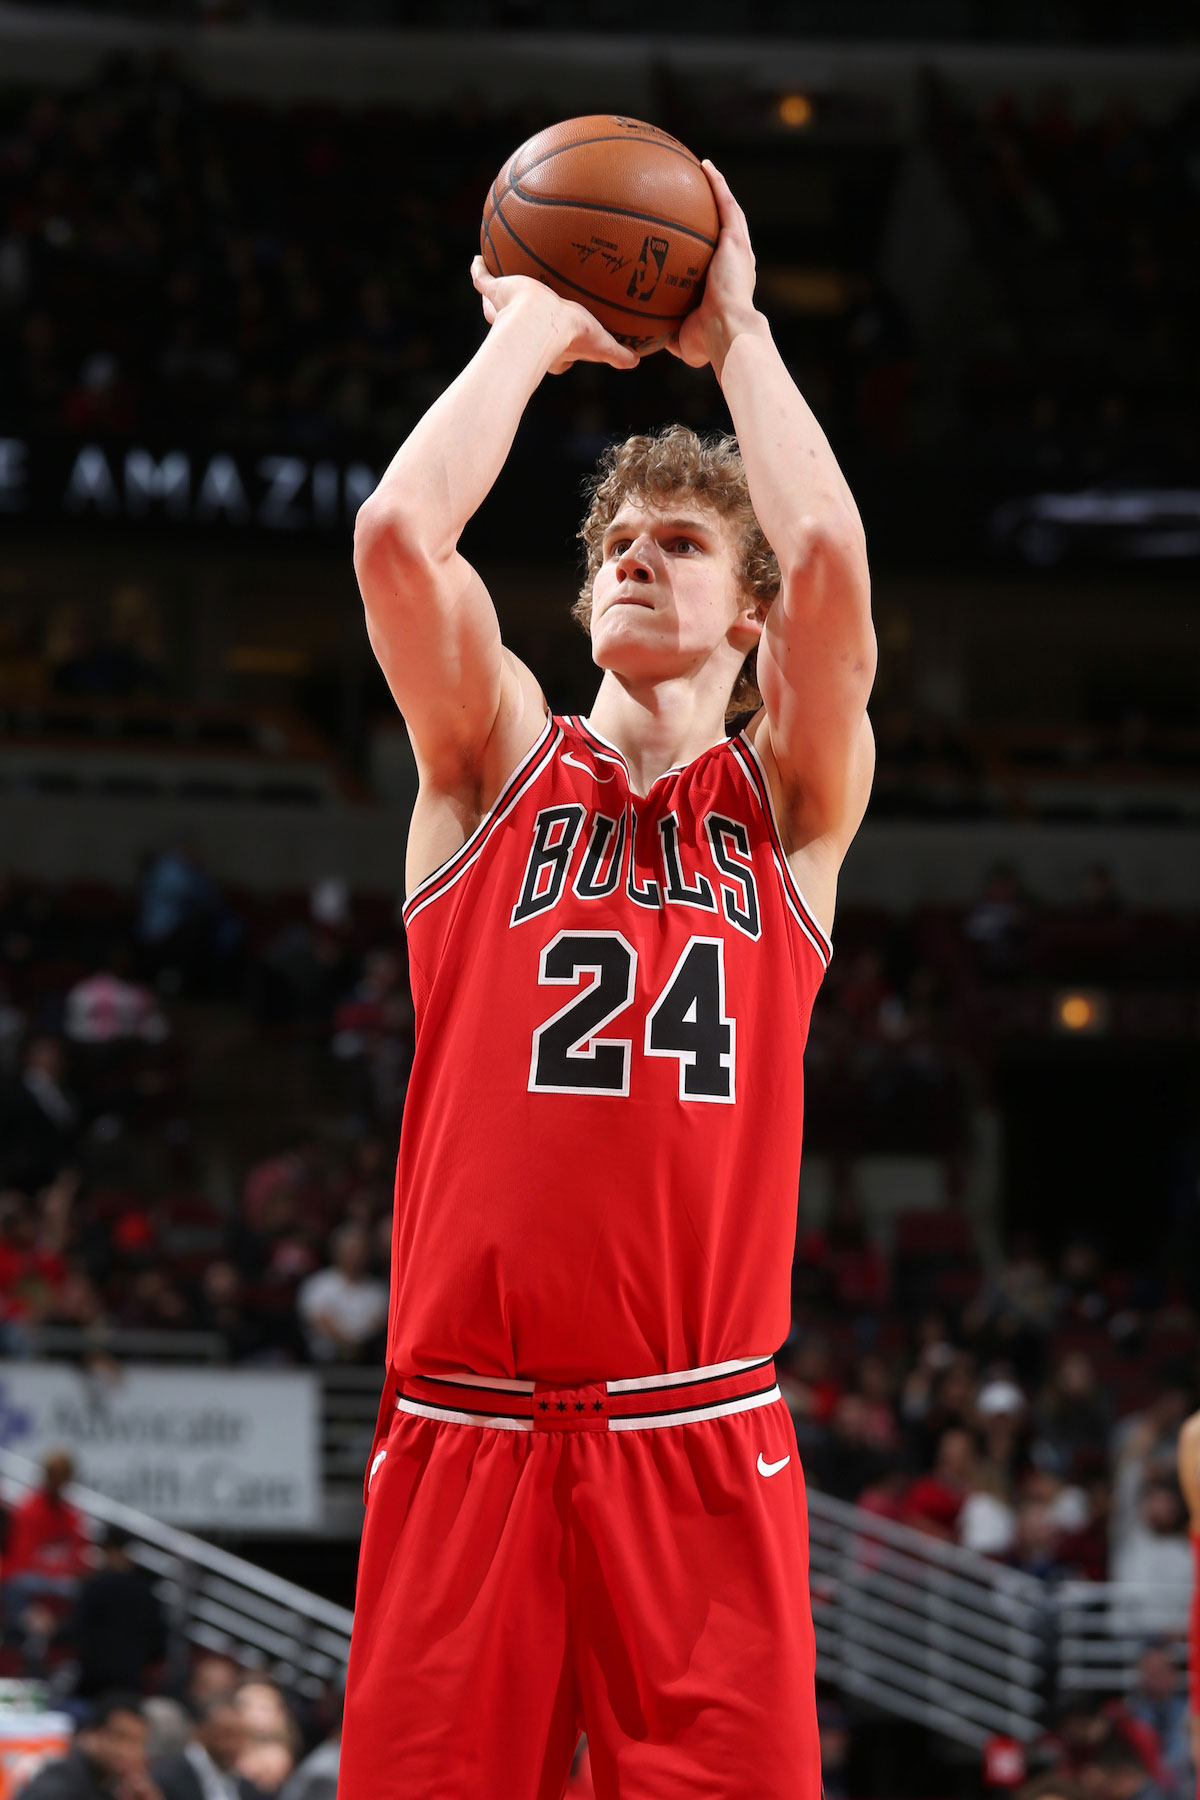 Lauri Markkanen #24 of the Chicago Bulls shoots a free throw against the Washington Wizards